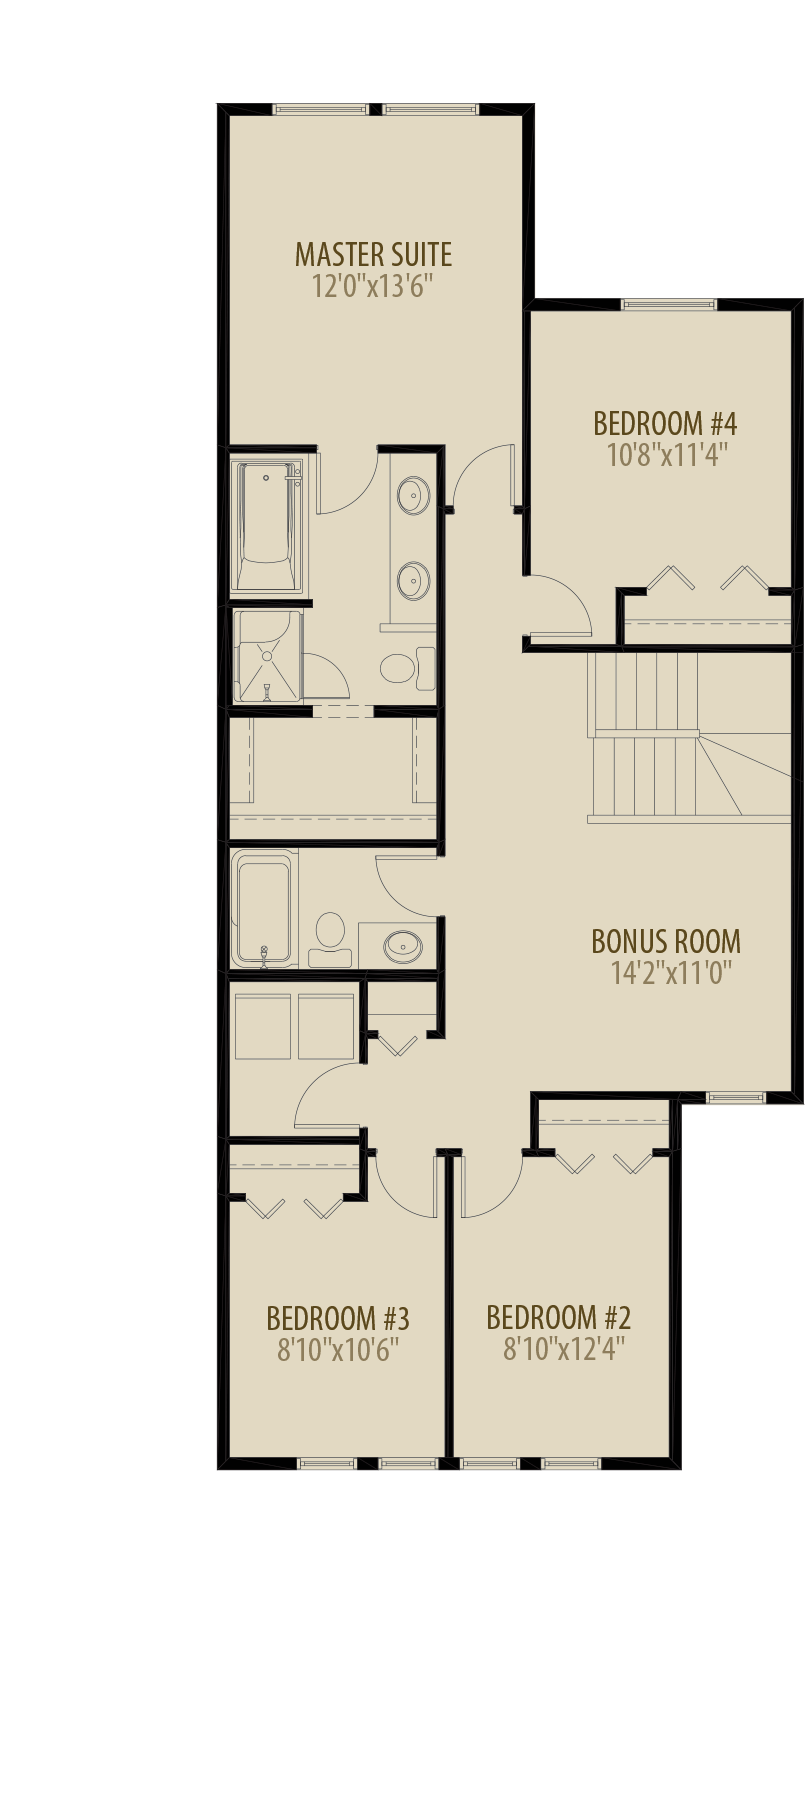 4th Bedroom Bonus Room Adds 74 sq ft